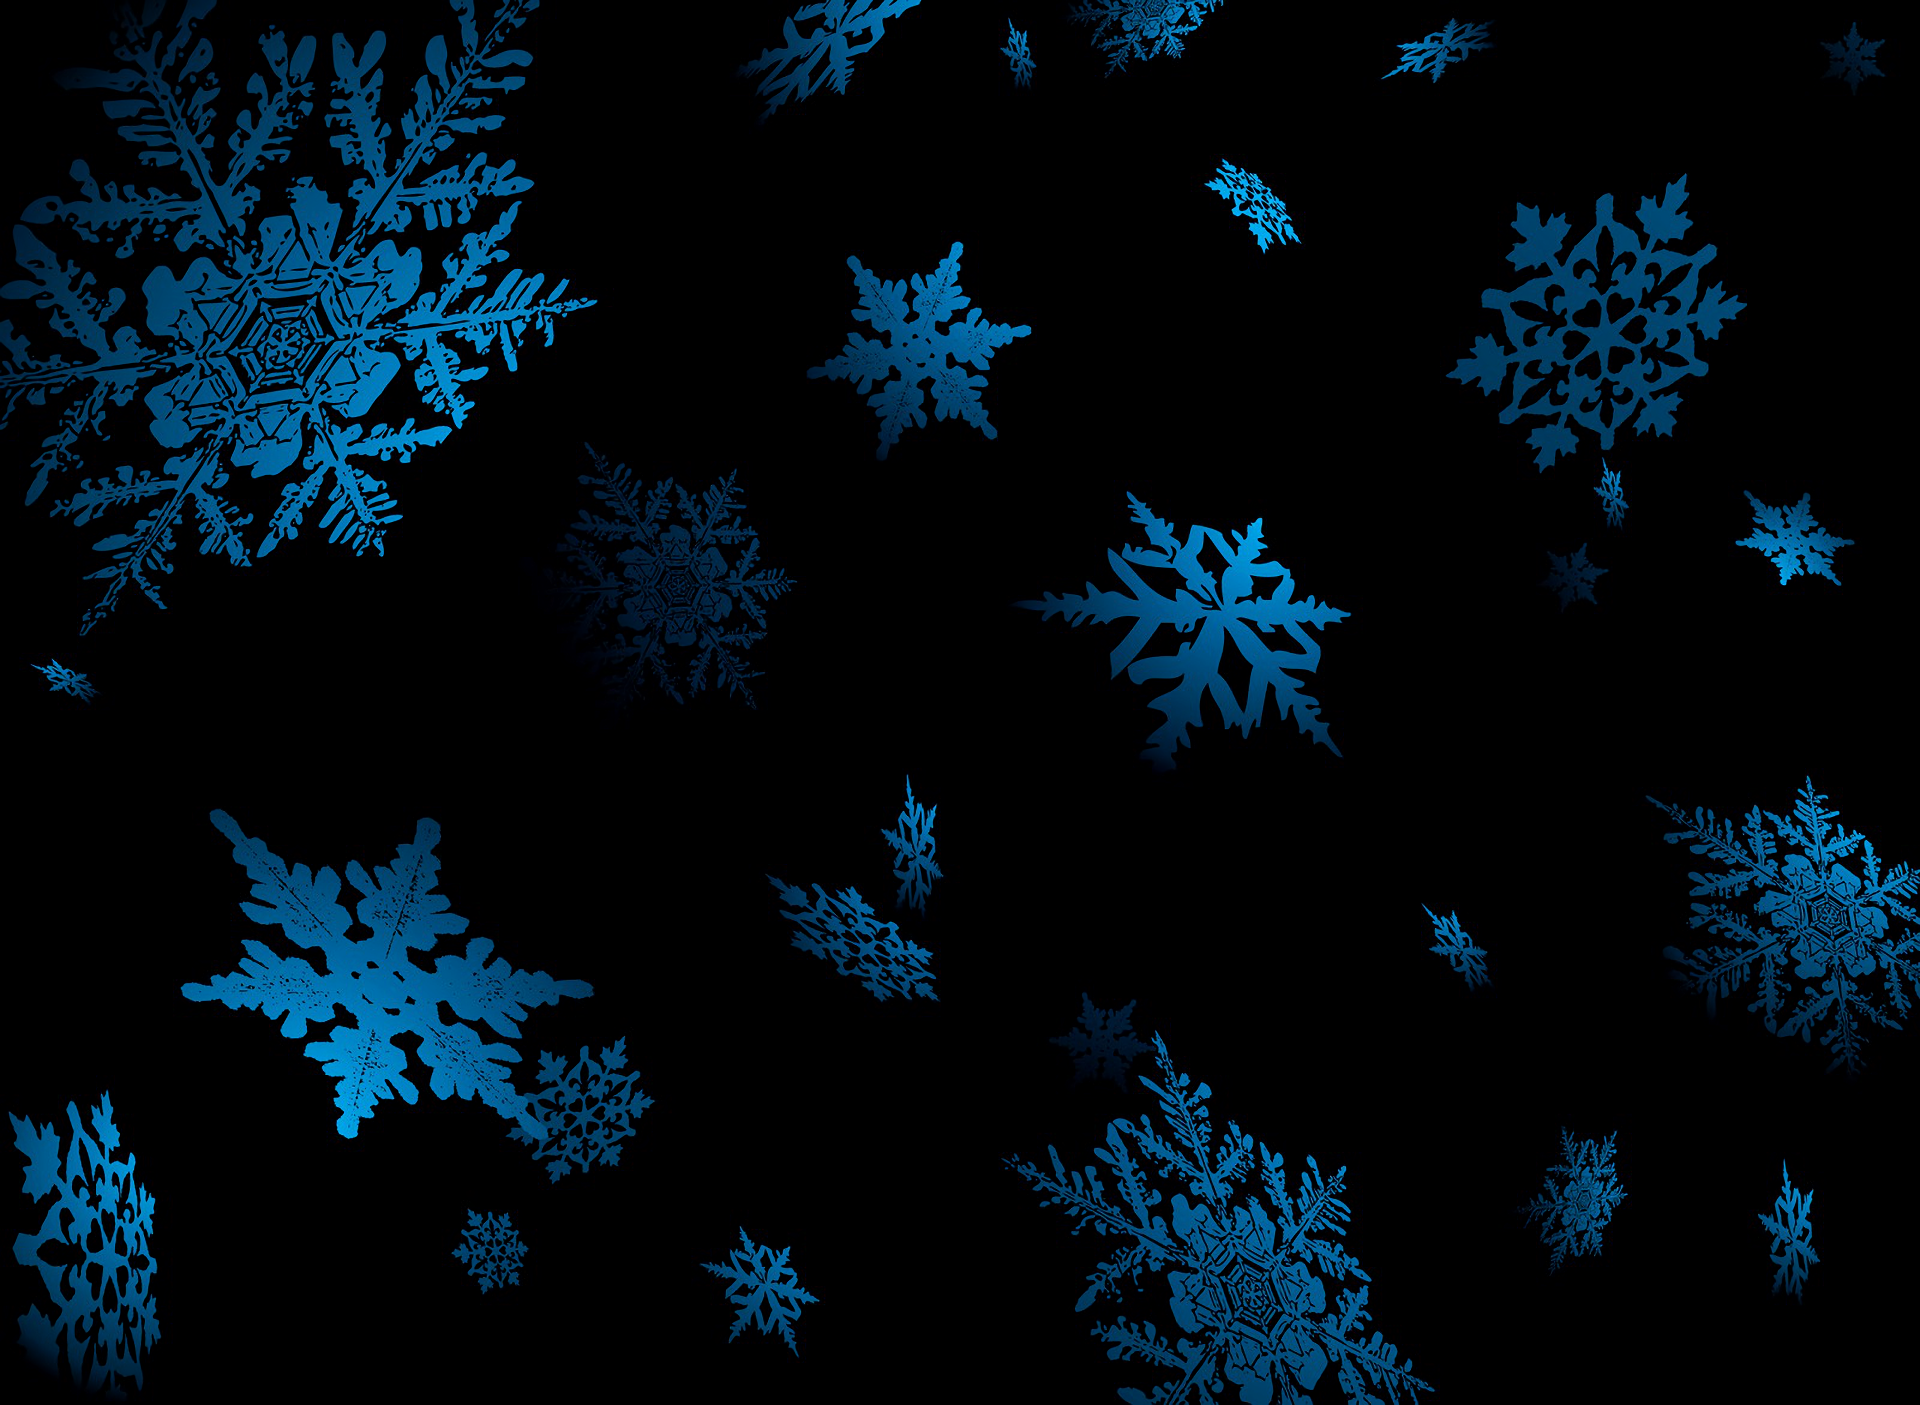 blue snowflakes hd wallpaper background image